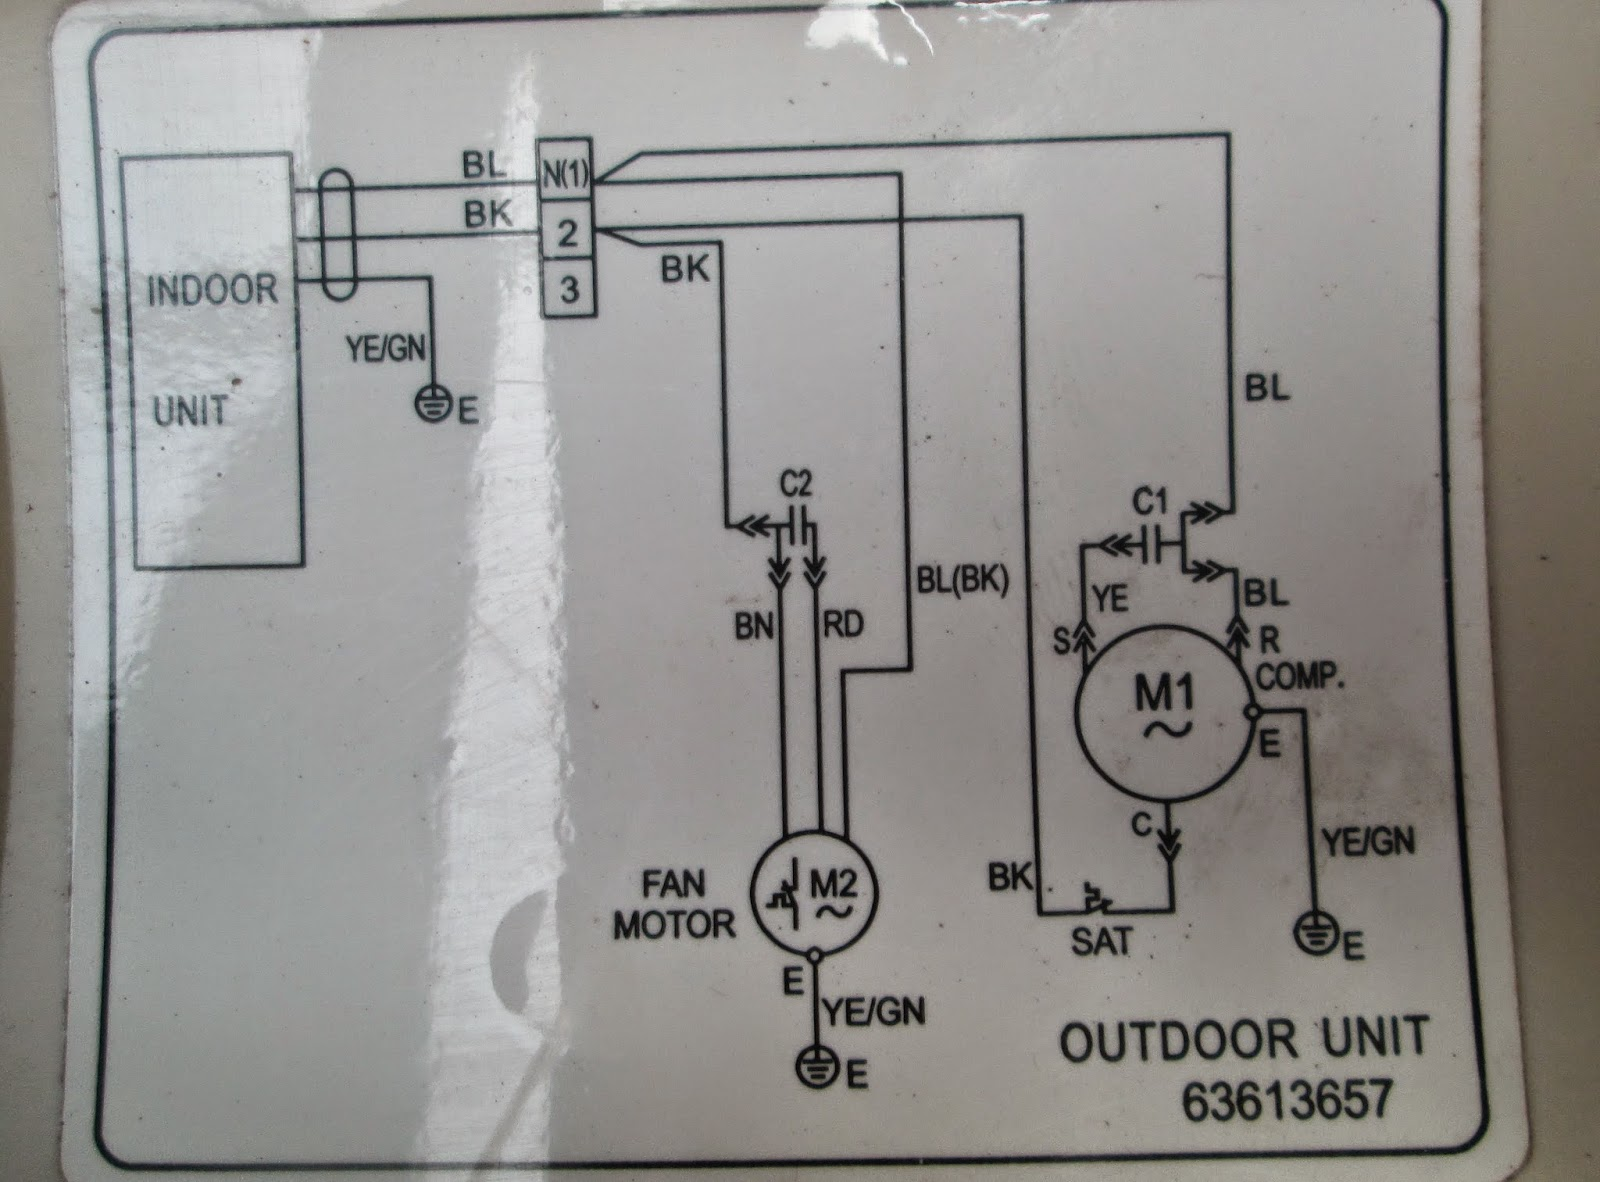 wiring diagram ac split daikin 2 pk how to wire trailer lights 4 way harga jual samsung inverter - 5 in 1 usb otg connection kit for galaxy tab 101 ...